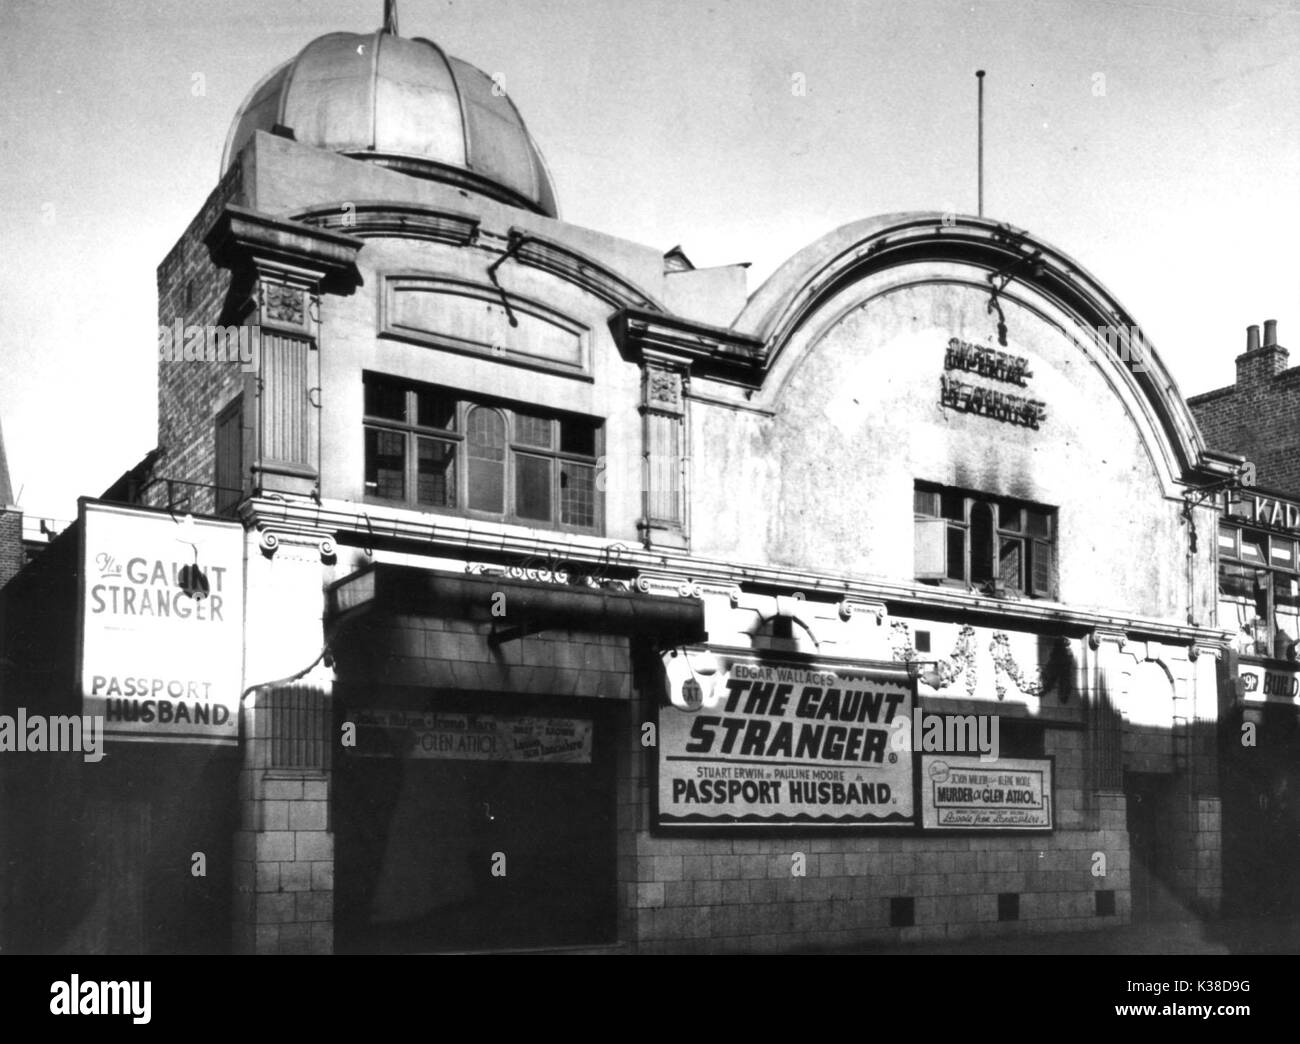 IMPERIAL PLAYHOUSE CINEMA POTOBELLO ROAD NOTTING HILL GATE WEST LONDON PICTURE FROM THE RONALD GRANT ARCHIVE IMPERIAL PLAYHOUSE CINEMA POTOBELLO ROAD NOTTING HILL GATE WEST LONDON - Stock Image